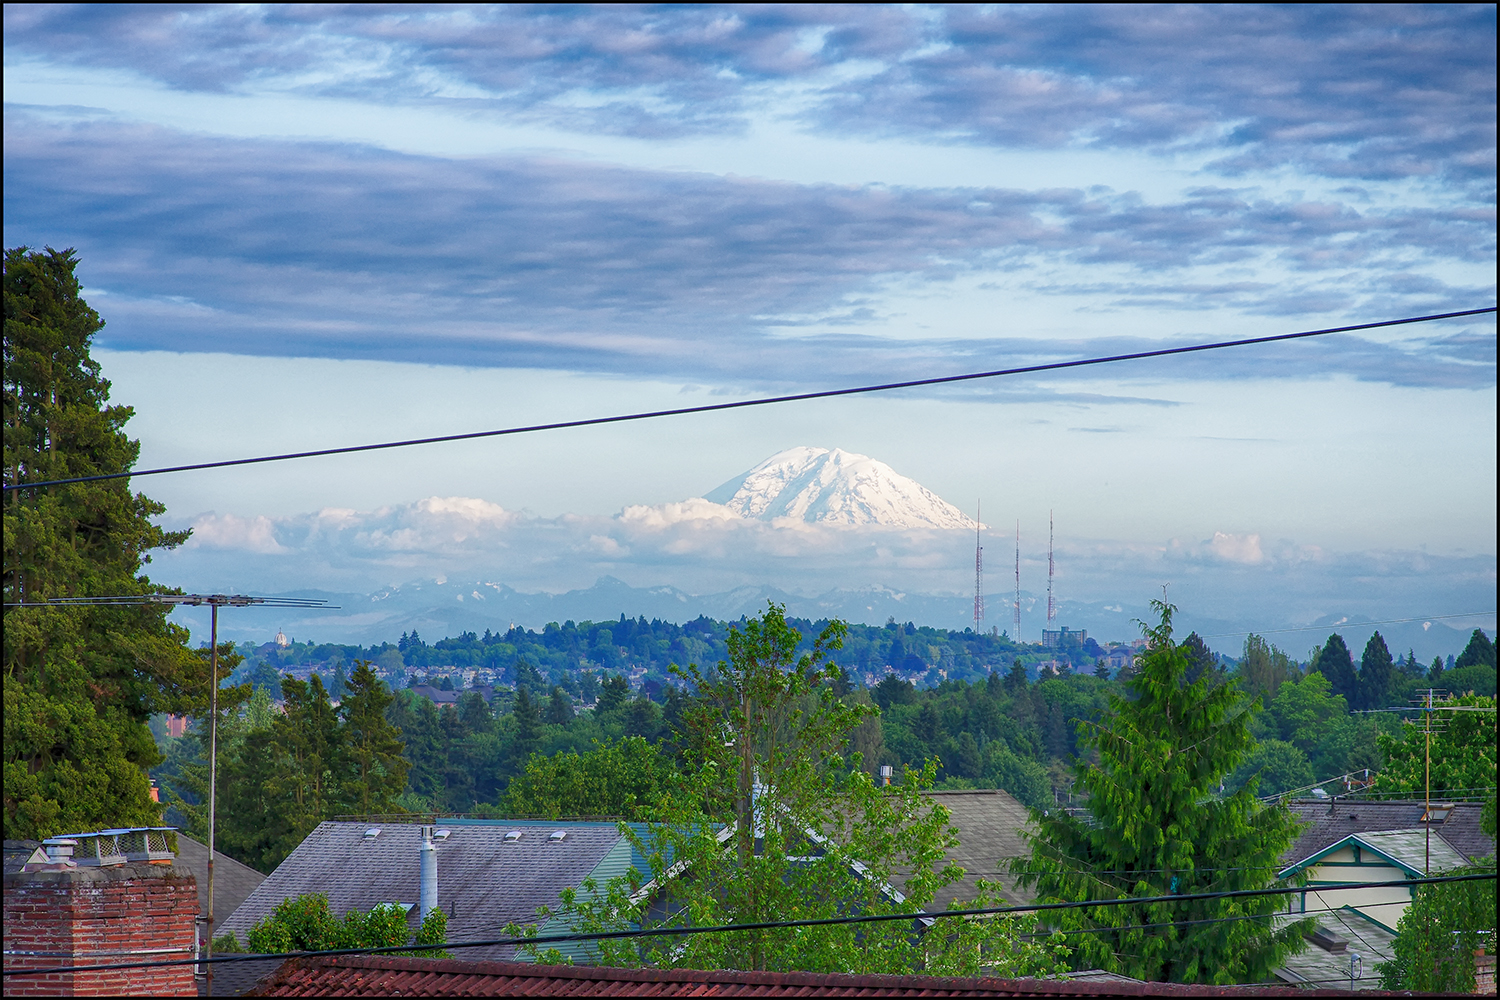 View of Mt. Rainer - 80+ plus Miles as the crow flies